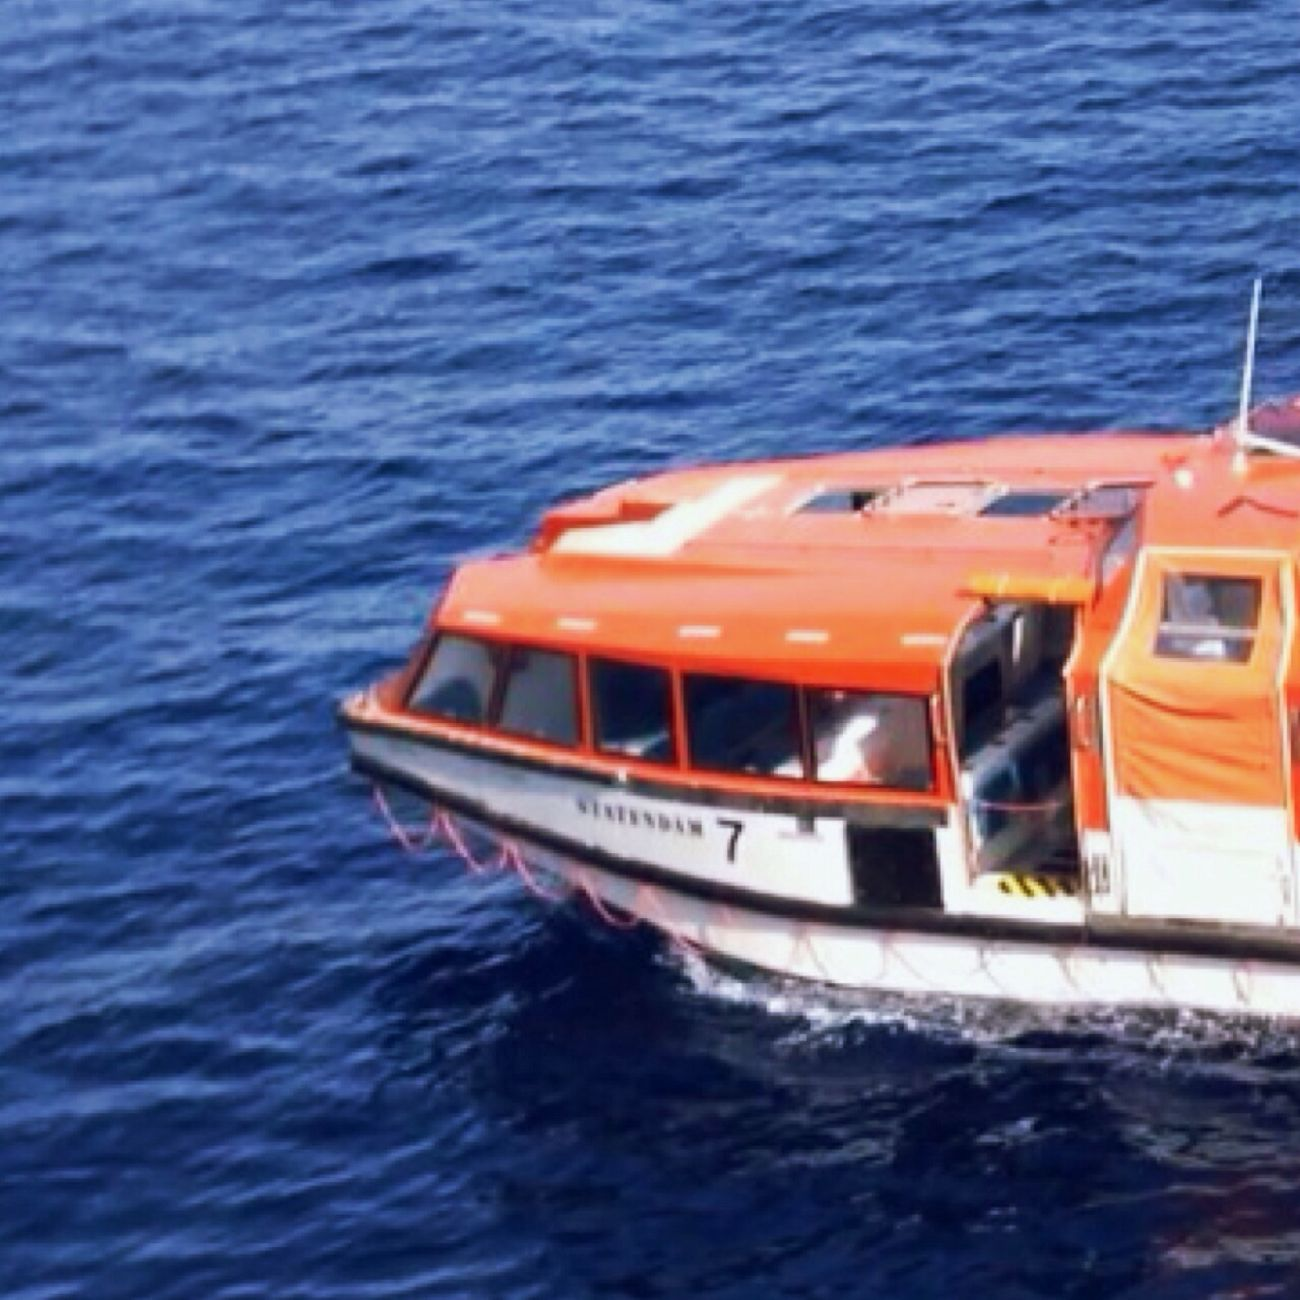 Cruise Lifeboat Orange Pacific Ocean Vhoto